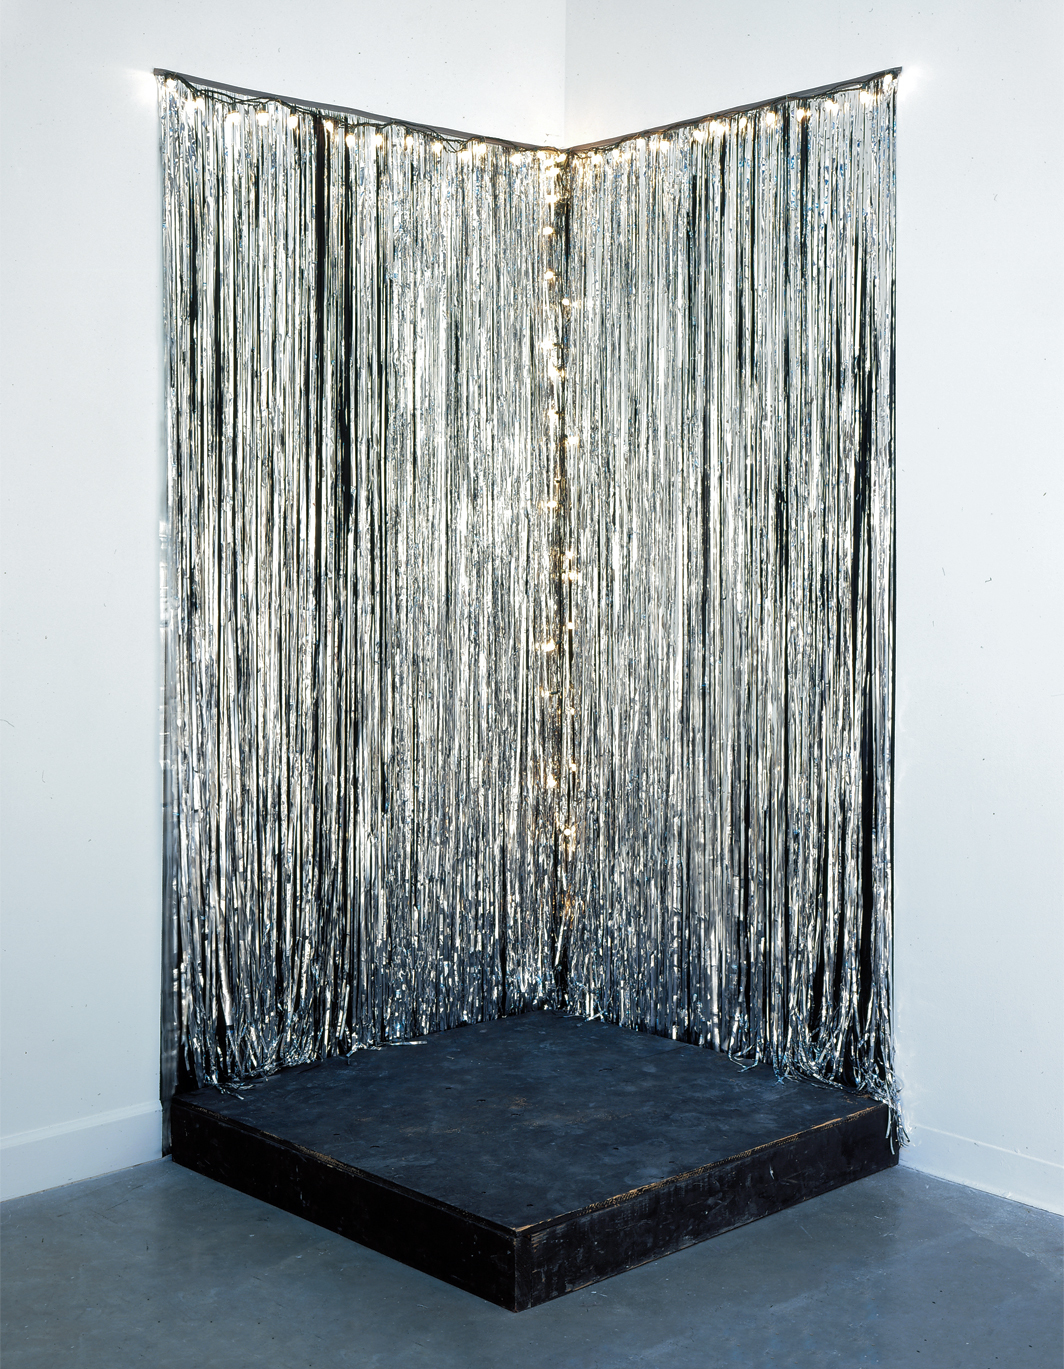 "Jack Pierson, Silver Jackie, 1991, plywood, silver Mylar, Christmas lights, 96 × 48 1⁄4 × 48""."